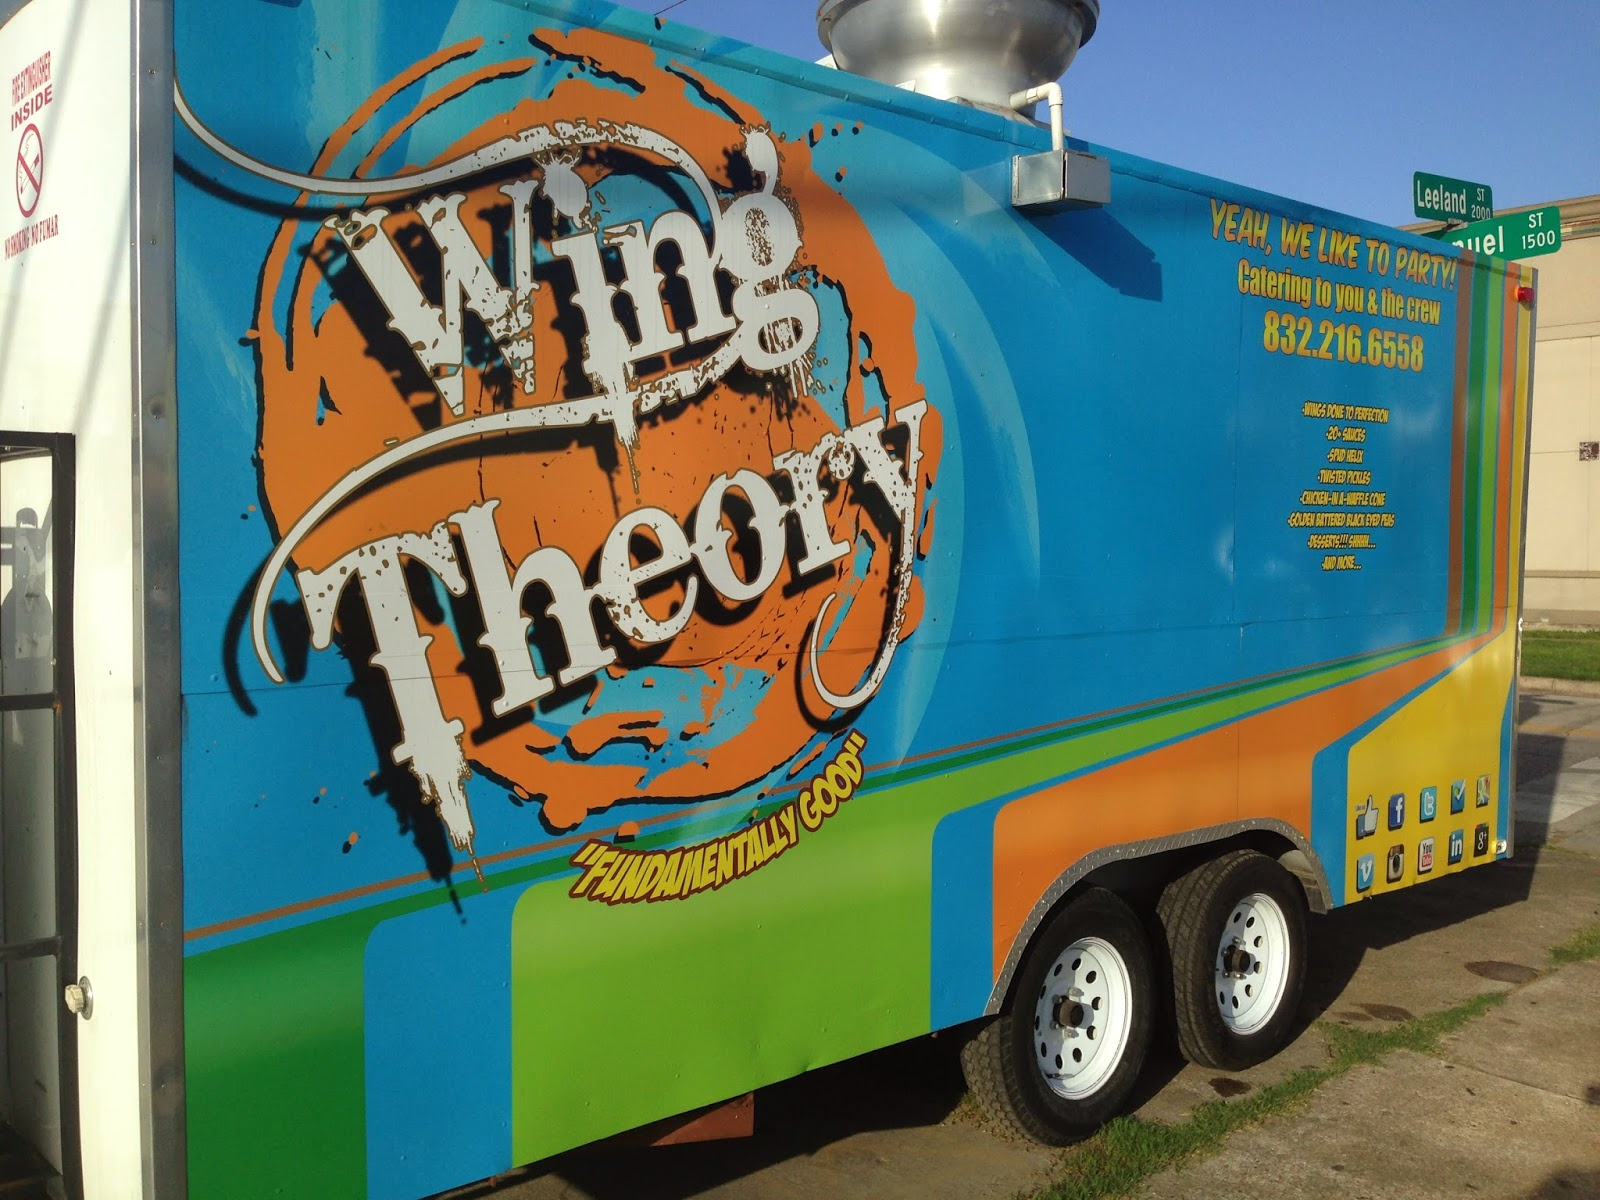 Wing Theory Food Truck, Houston, TX